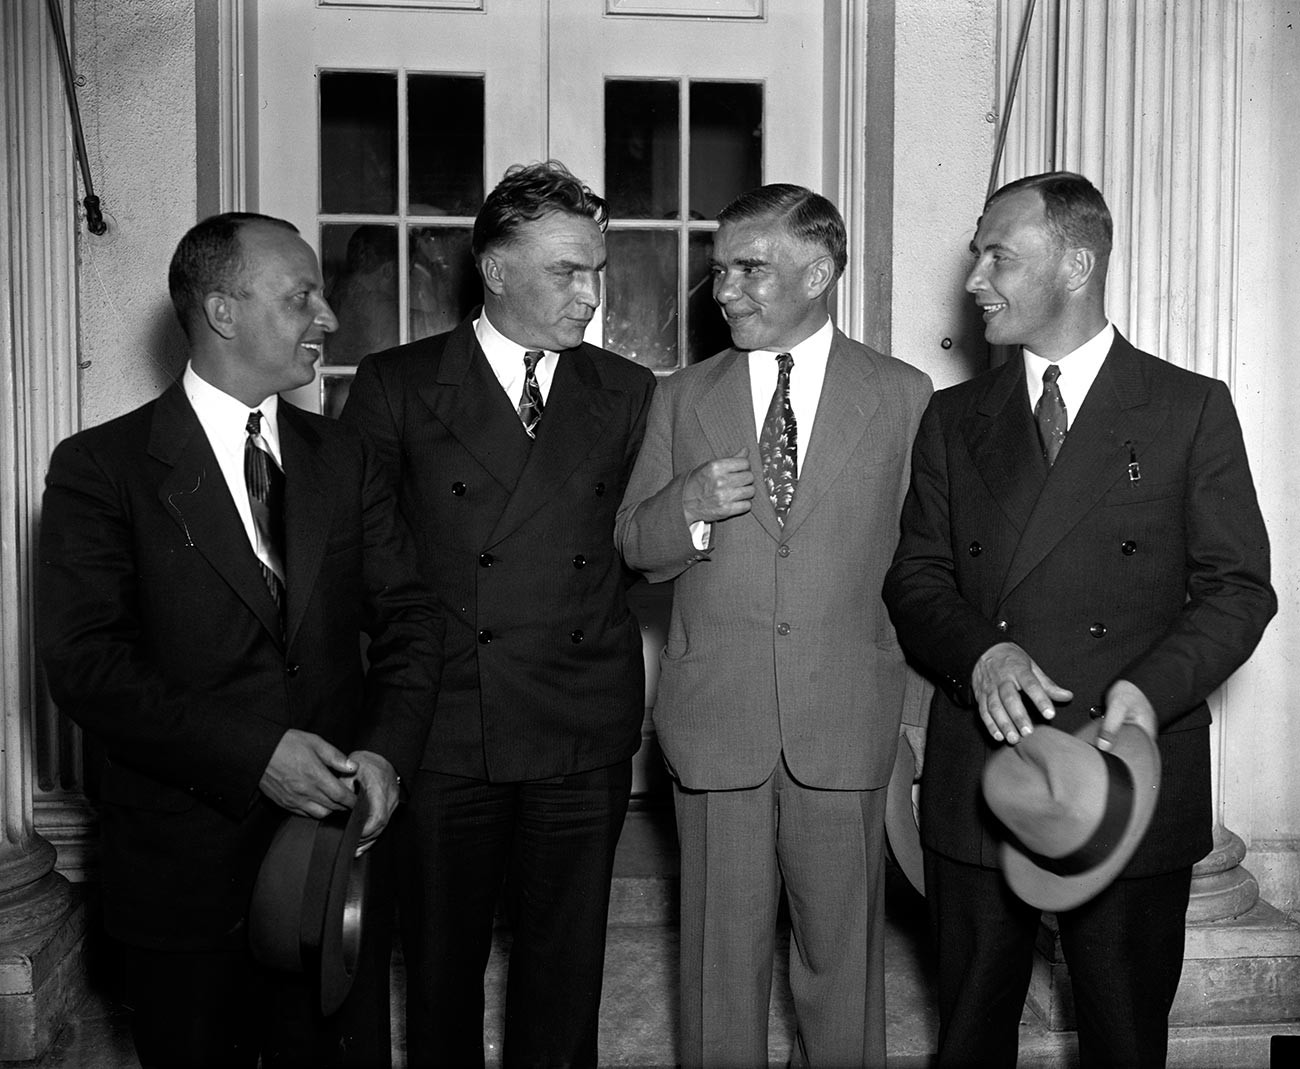 The Soviet pilots after the meeting with the U.S. President in the White House.